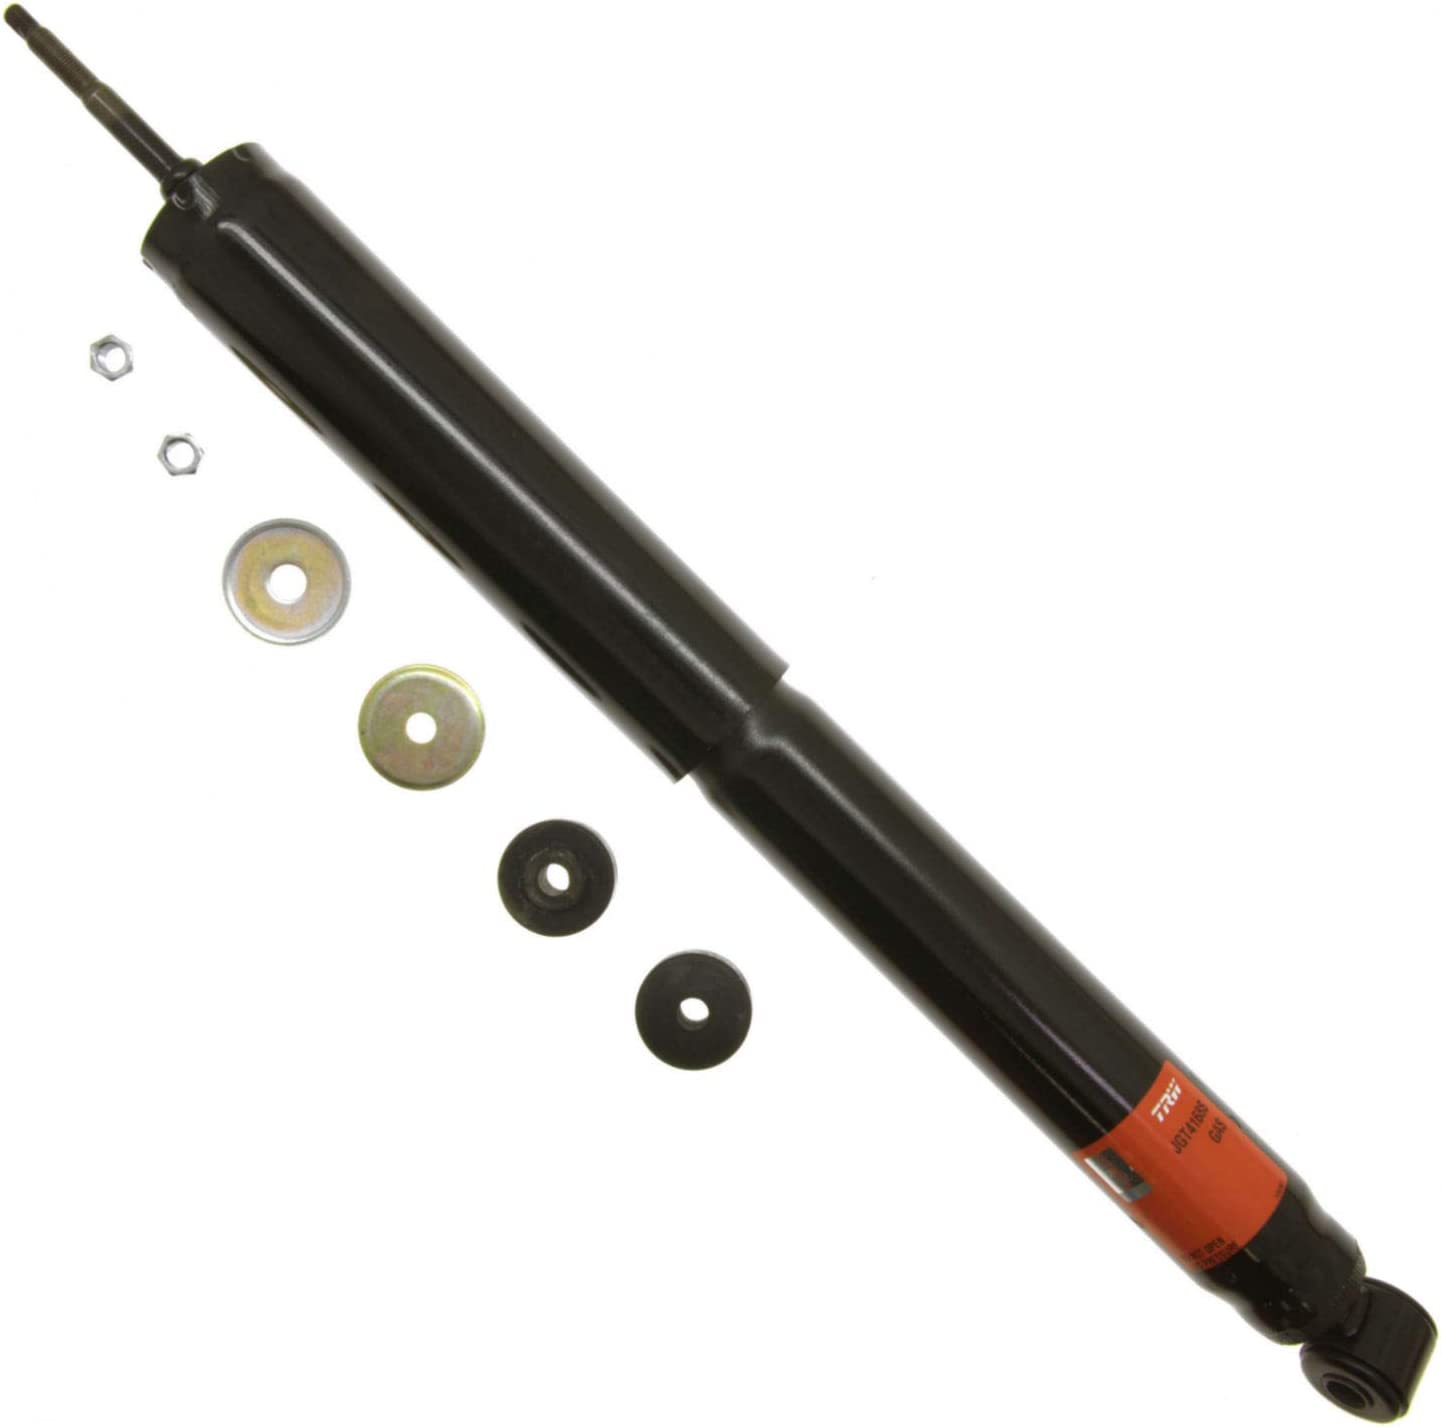 JGT4168S TRW Shock Absorber ECONOLINE 55% OFF REAR 2014-1992 free shipping FORD